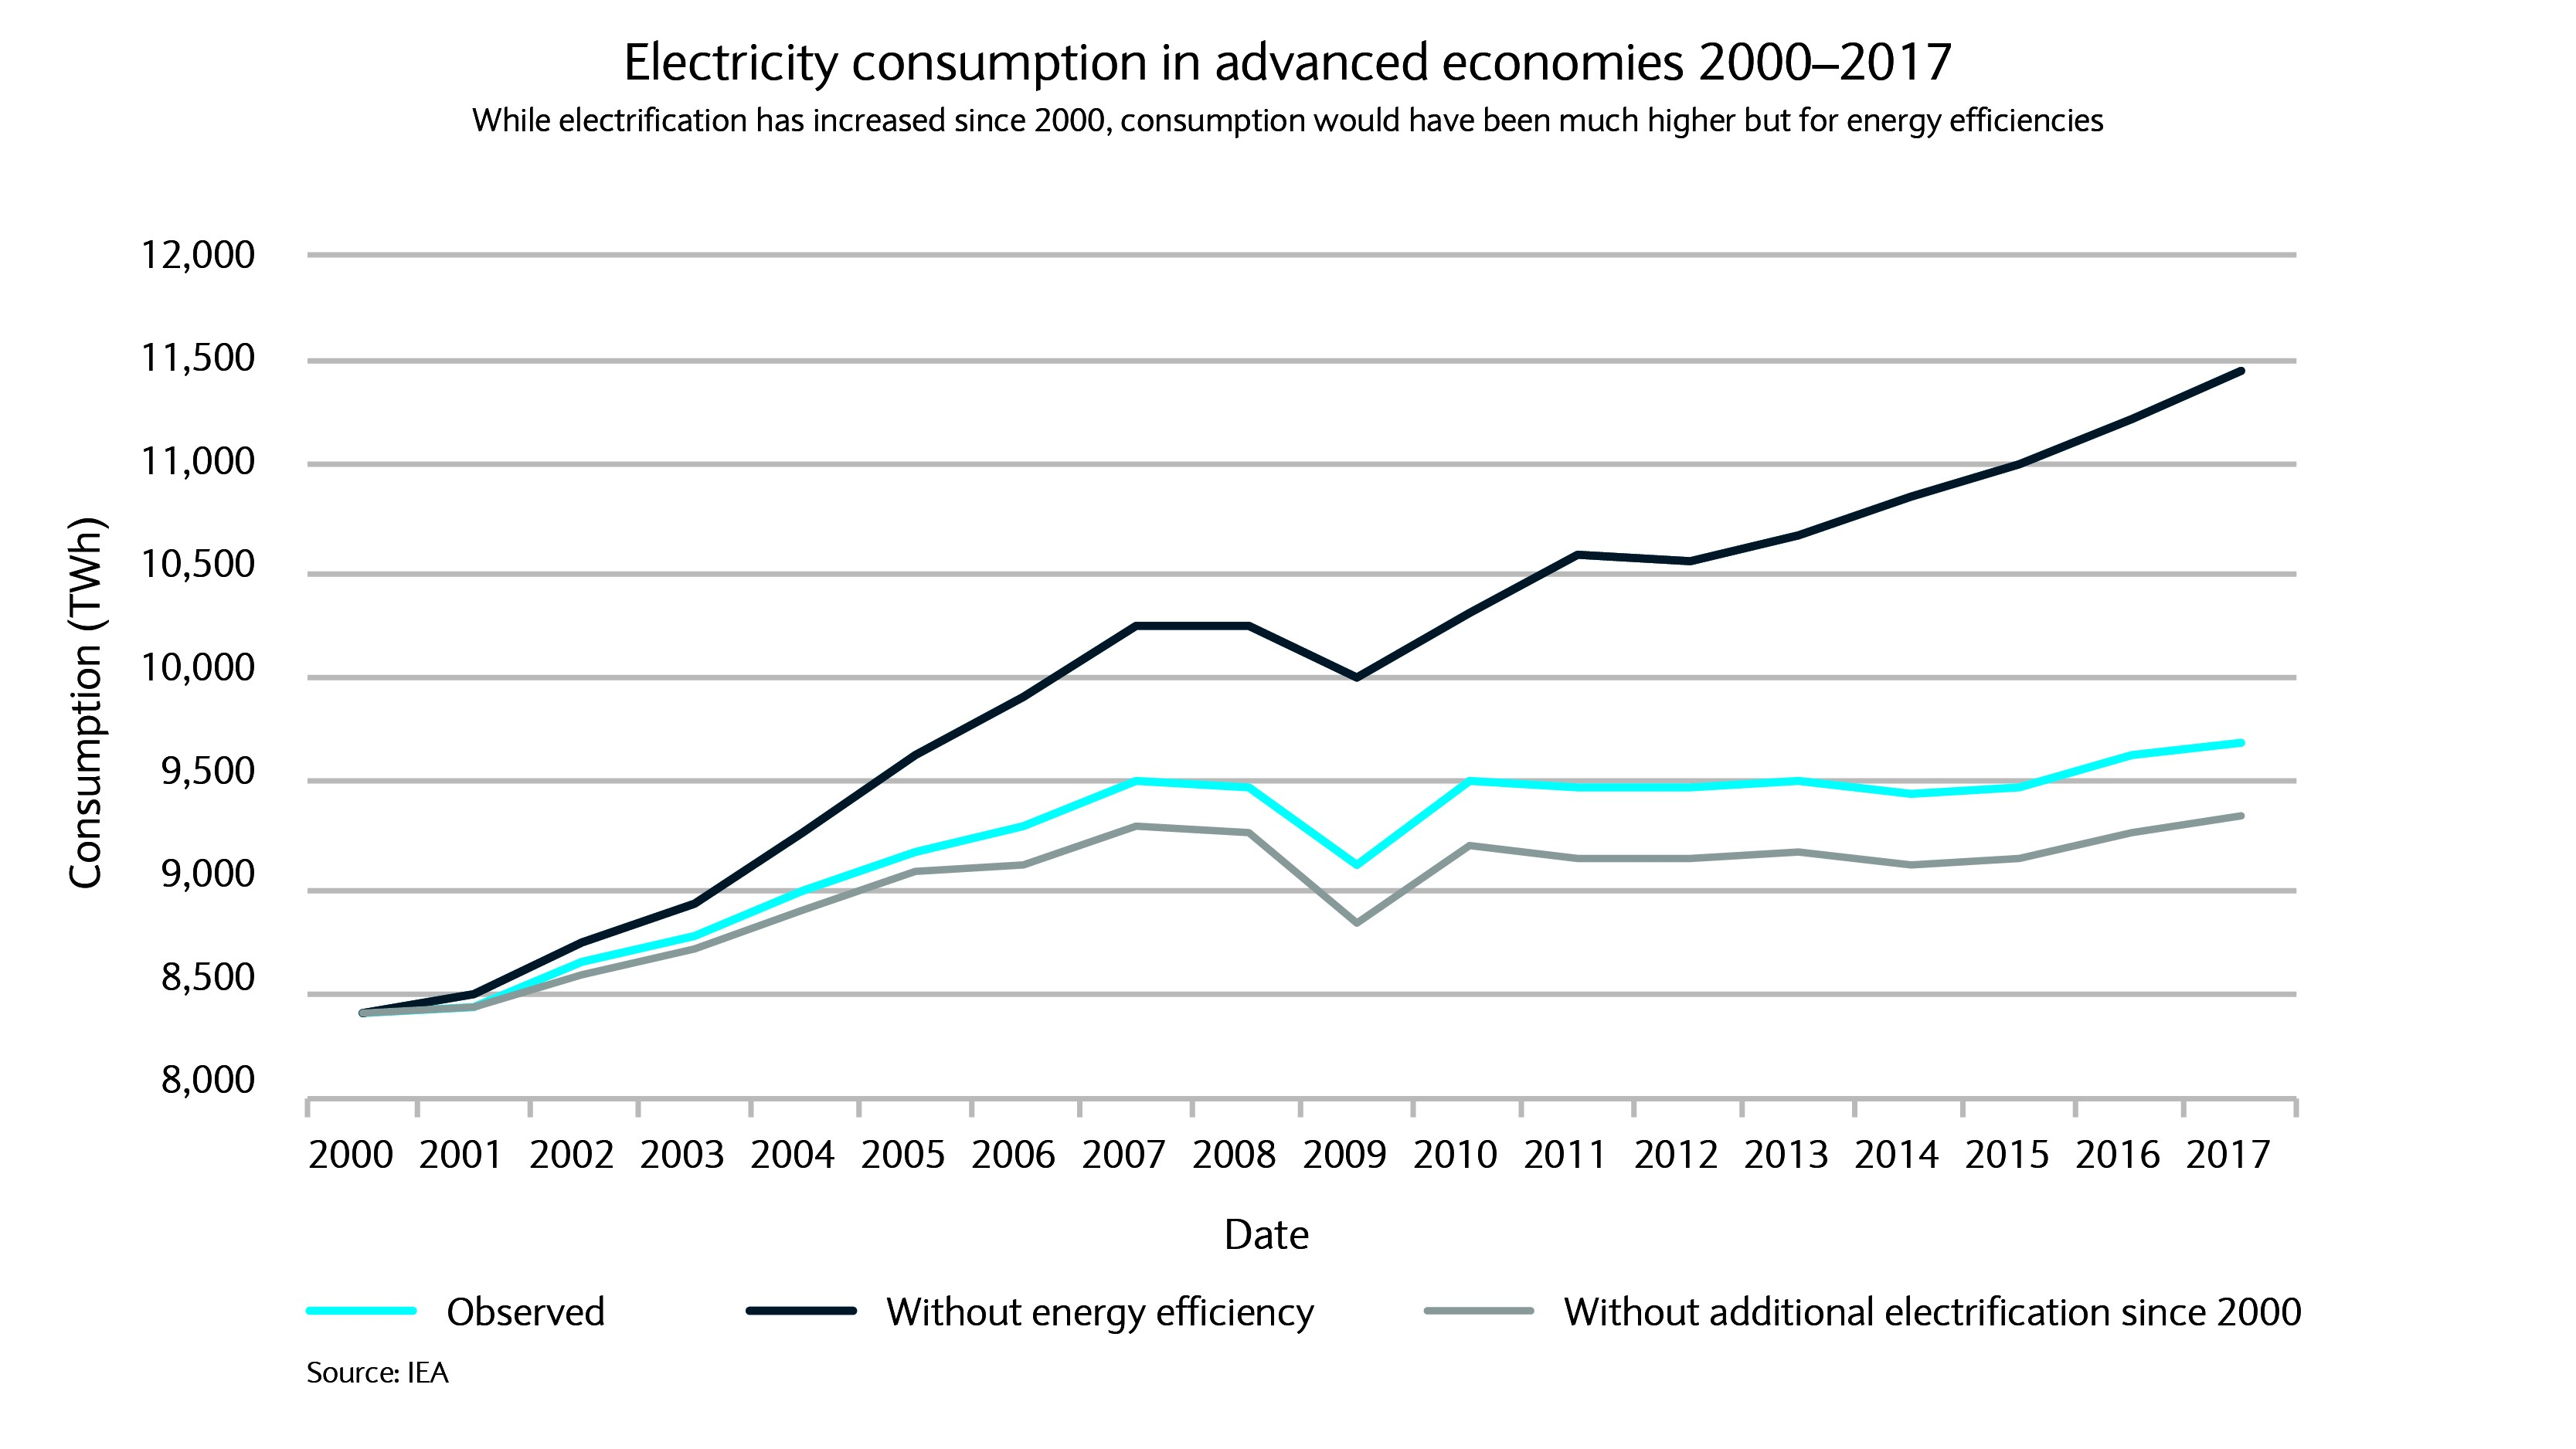 Electricity consumption in advanced economies